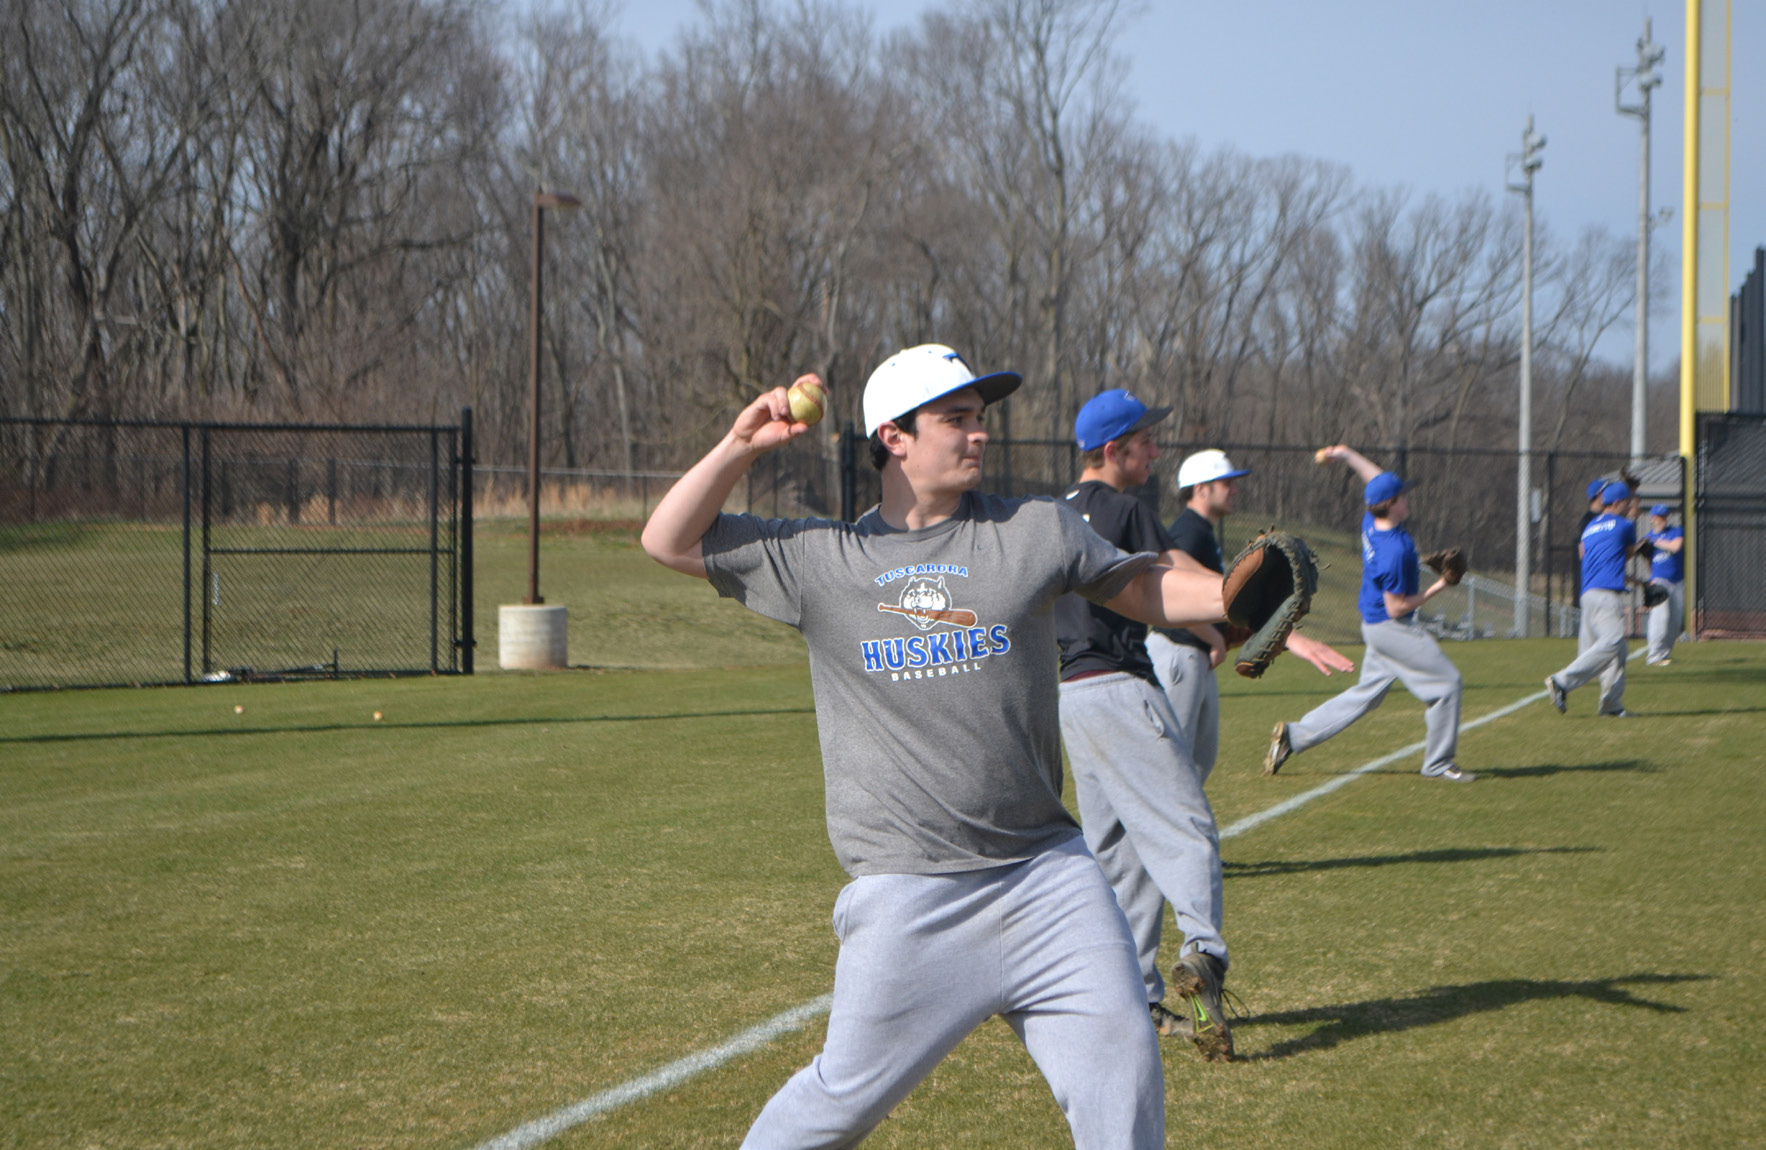 Senior catcher Brady Kaplan throws a pitch as a part of a drill at one of the Tuscarora baseball team's practices. Photo credit: Hanna Duenkel